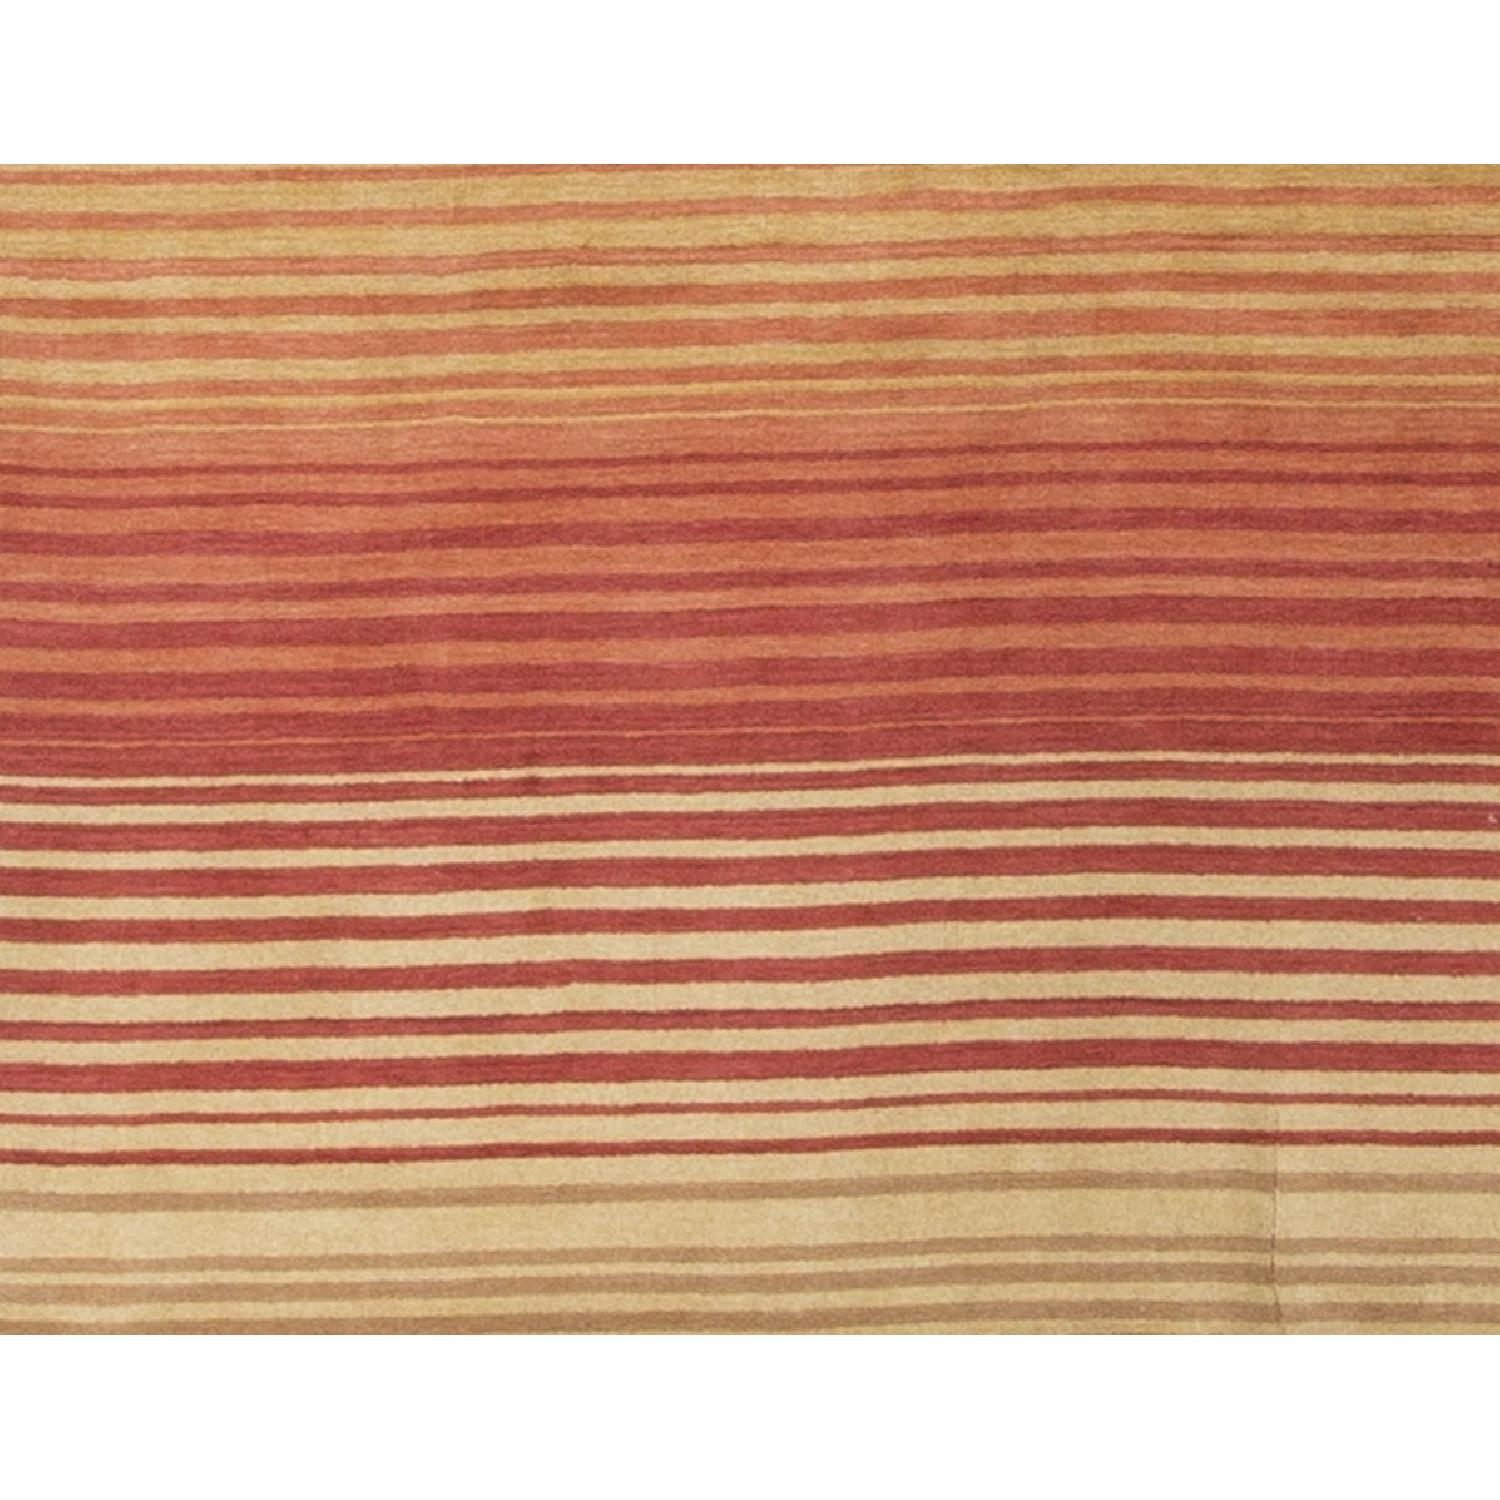 Modern Contemporary Hand Knotted Wool Rug in Soft Pastels - image-3